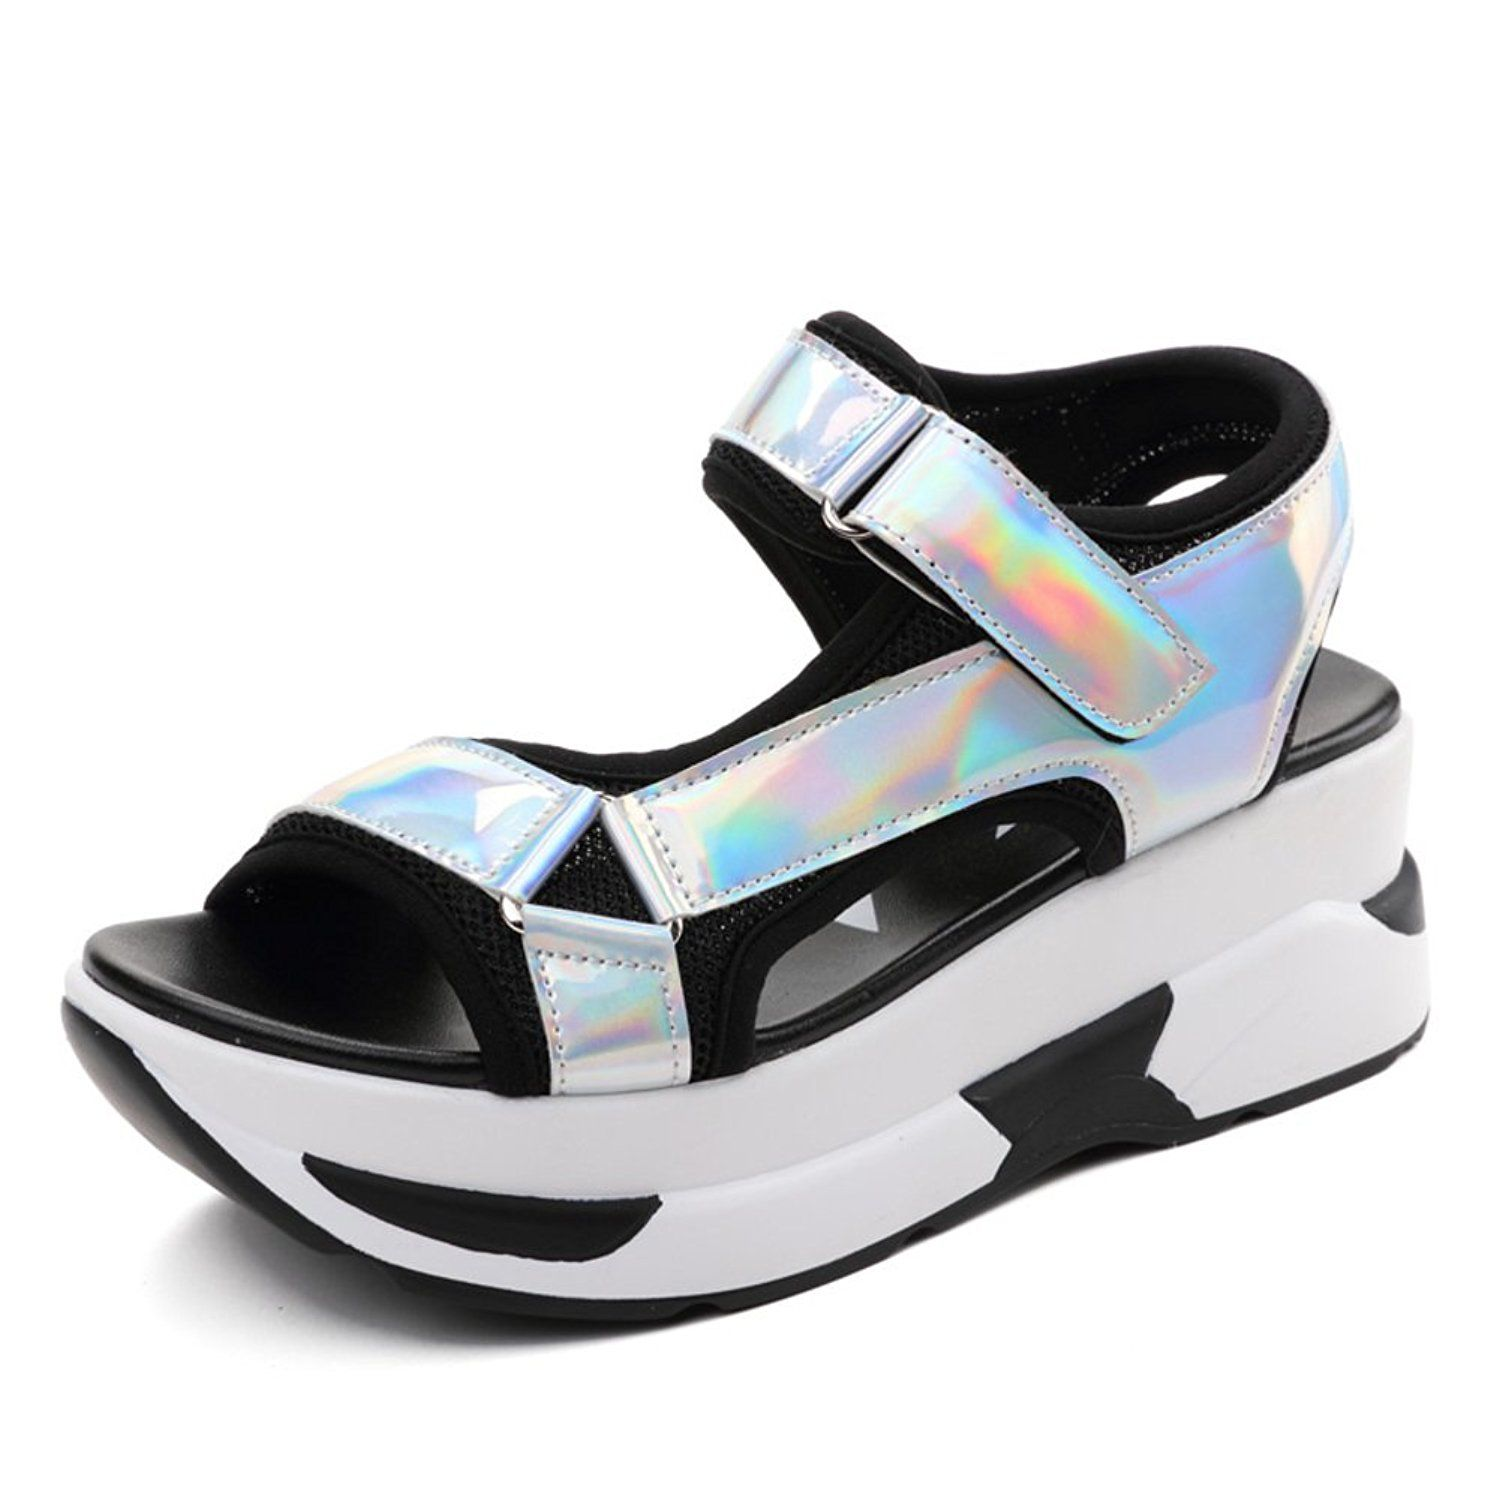 903bcbaa04bb Womens sandals Flat sandals with the student girl Cake thick-soled sports  shoes     Click image for more details.